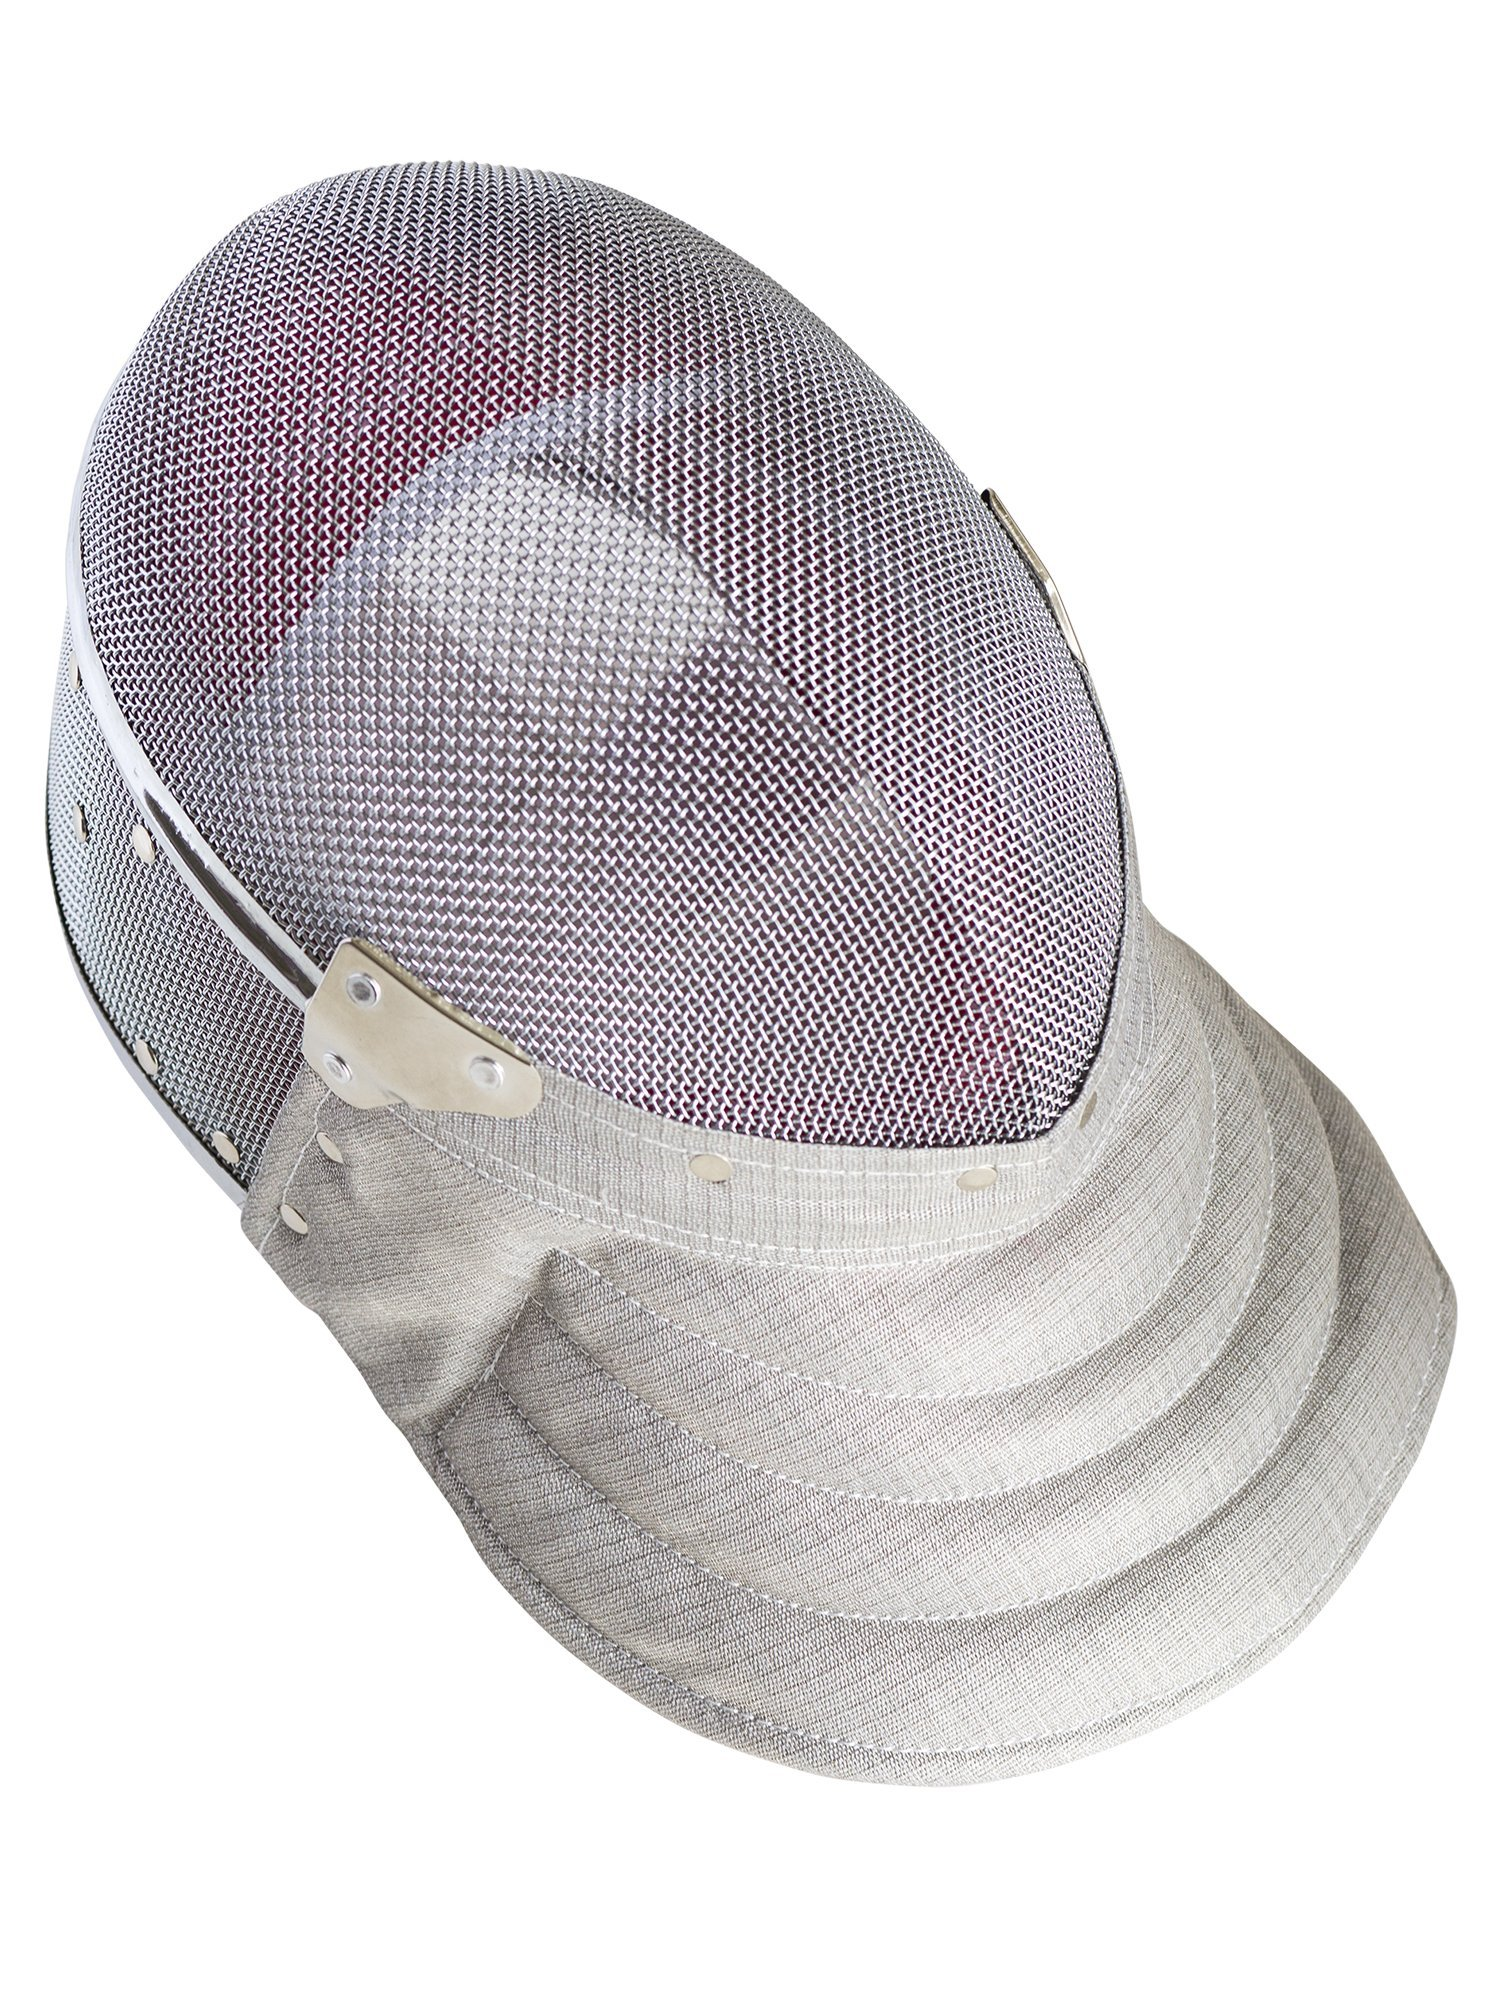 Fencing Sabre Mask CE350N Certified National Grade Including Head ...